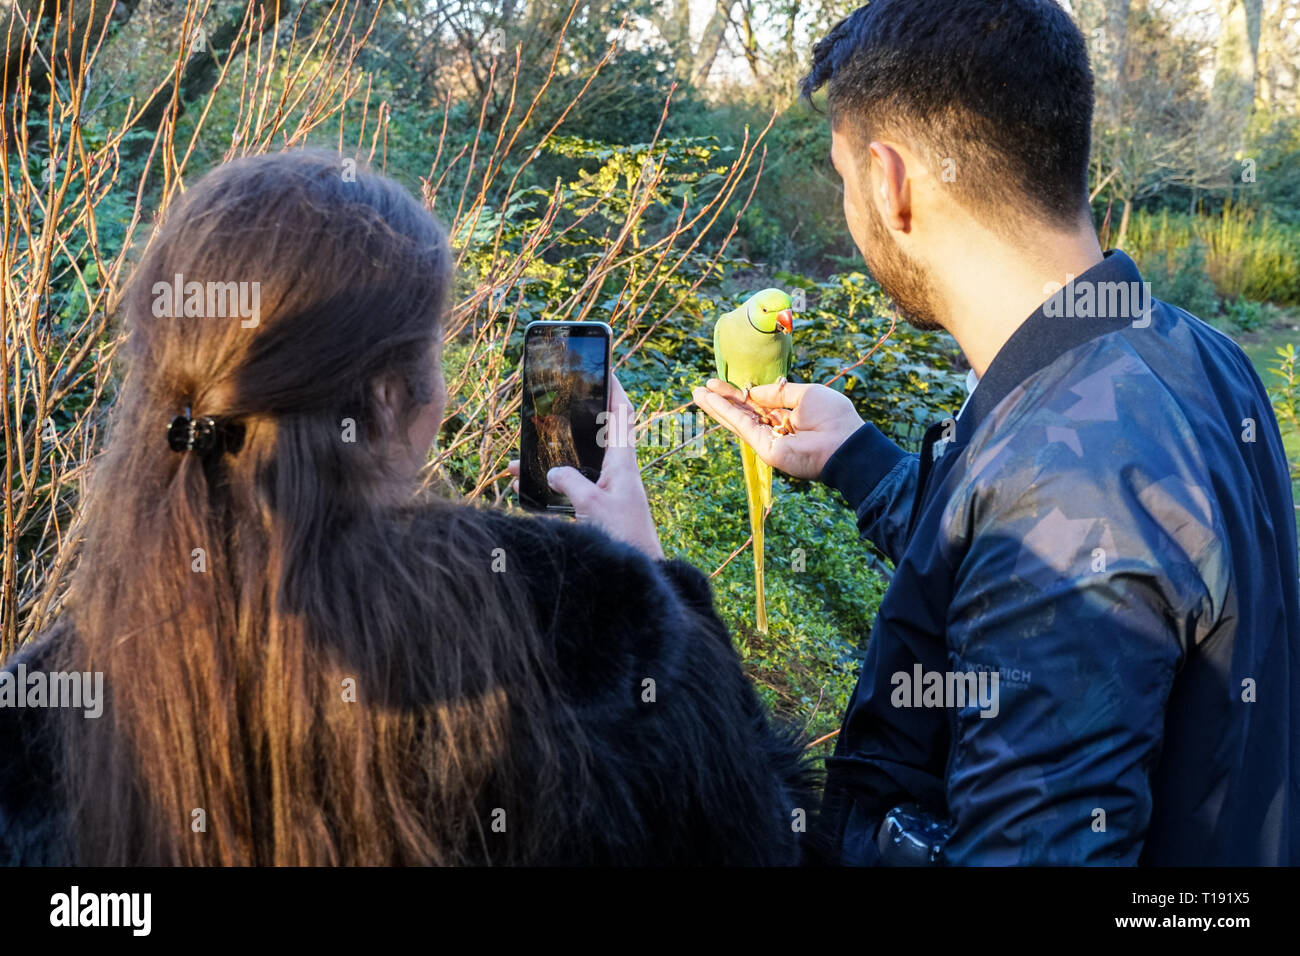 People hand feeding parakeets in St James's Park, London England United Kingdom UK Stock Photo